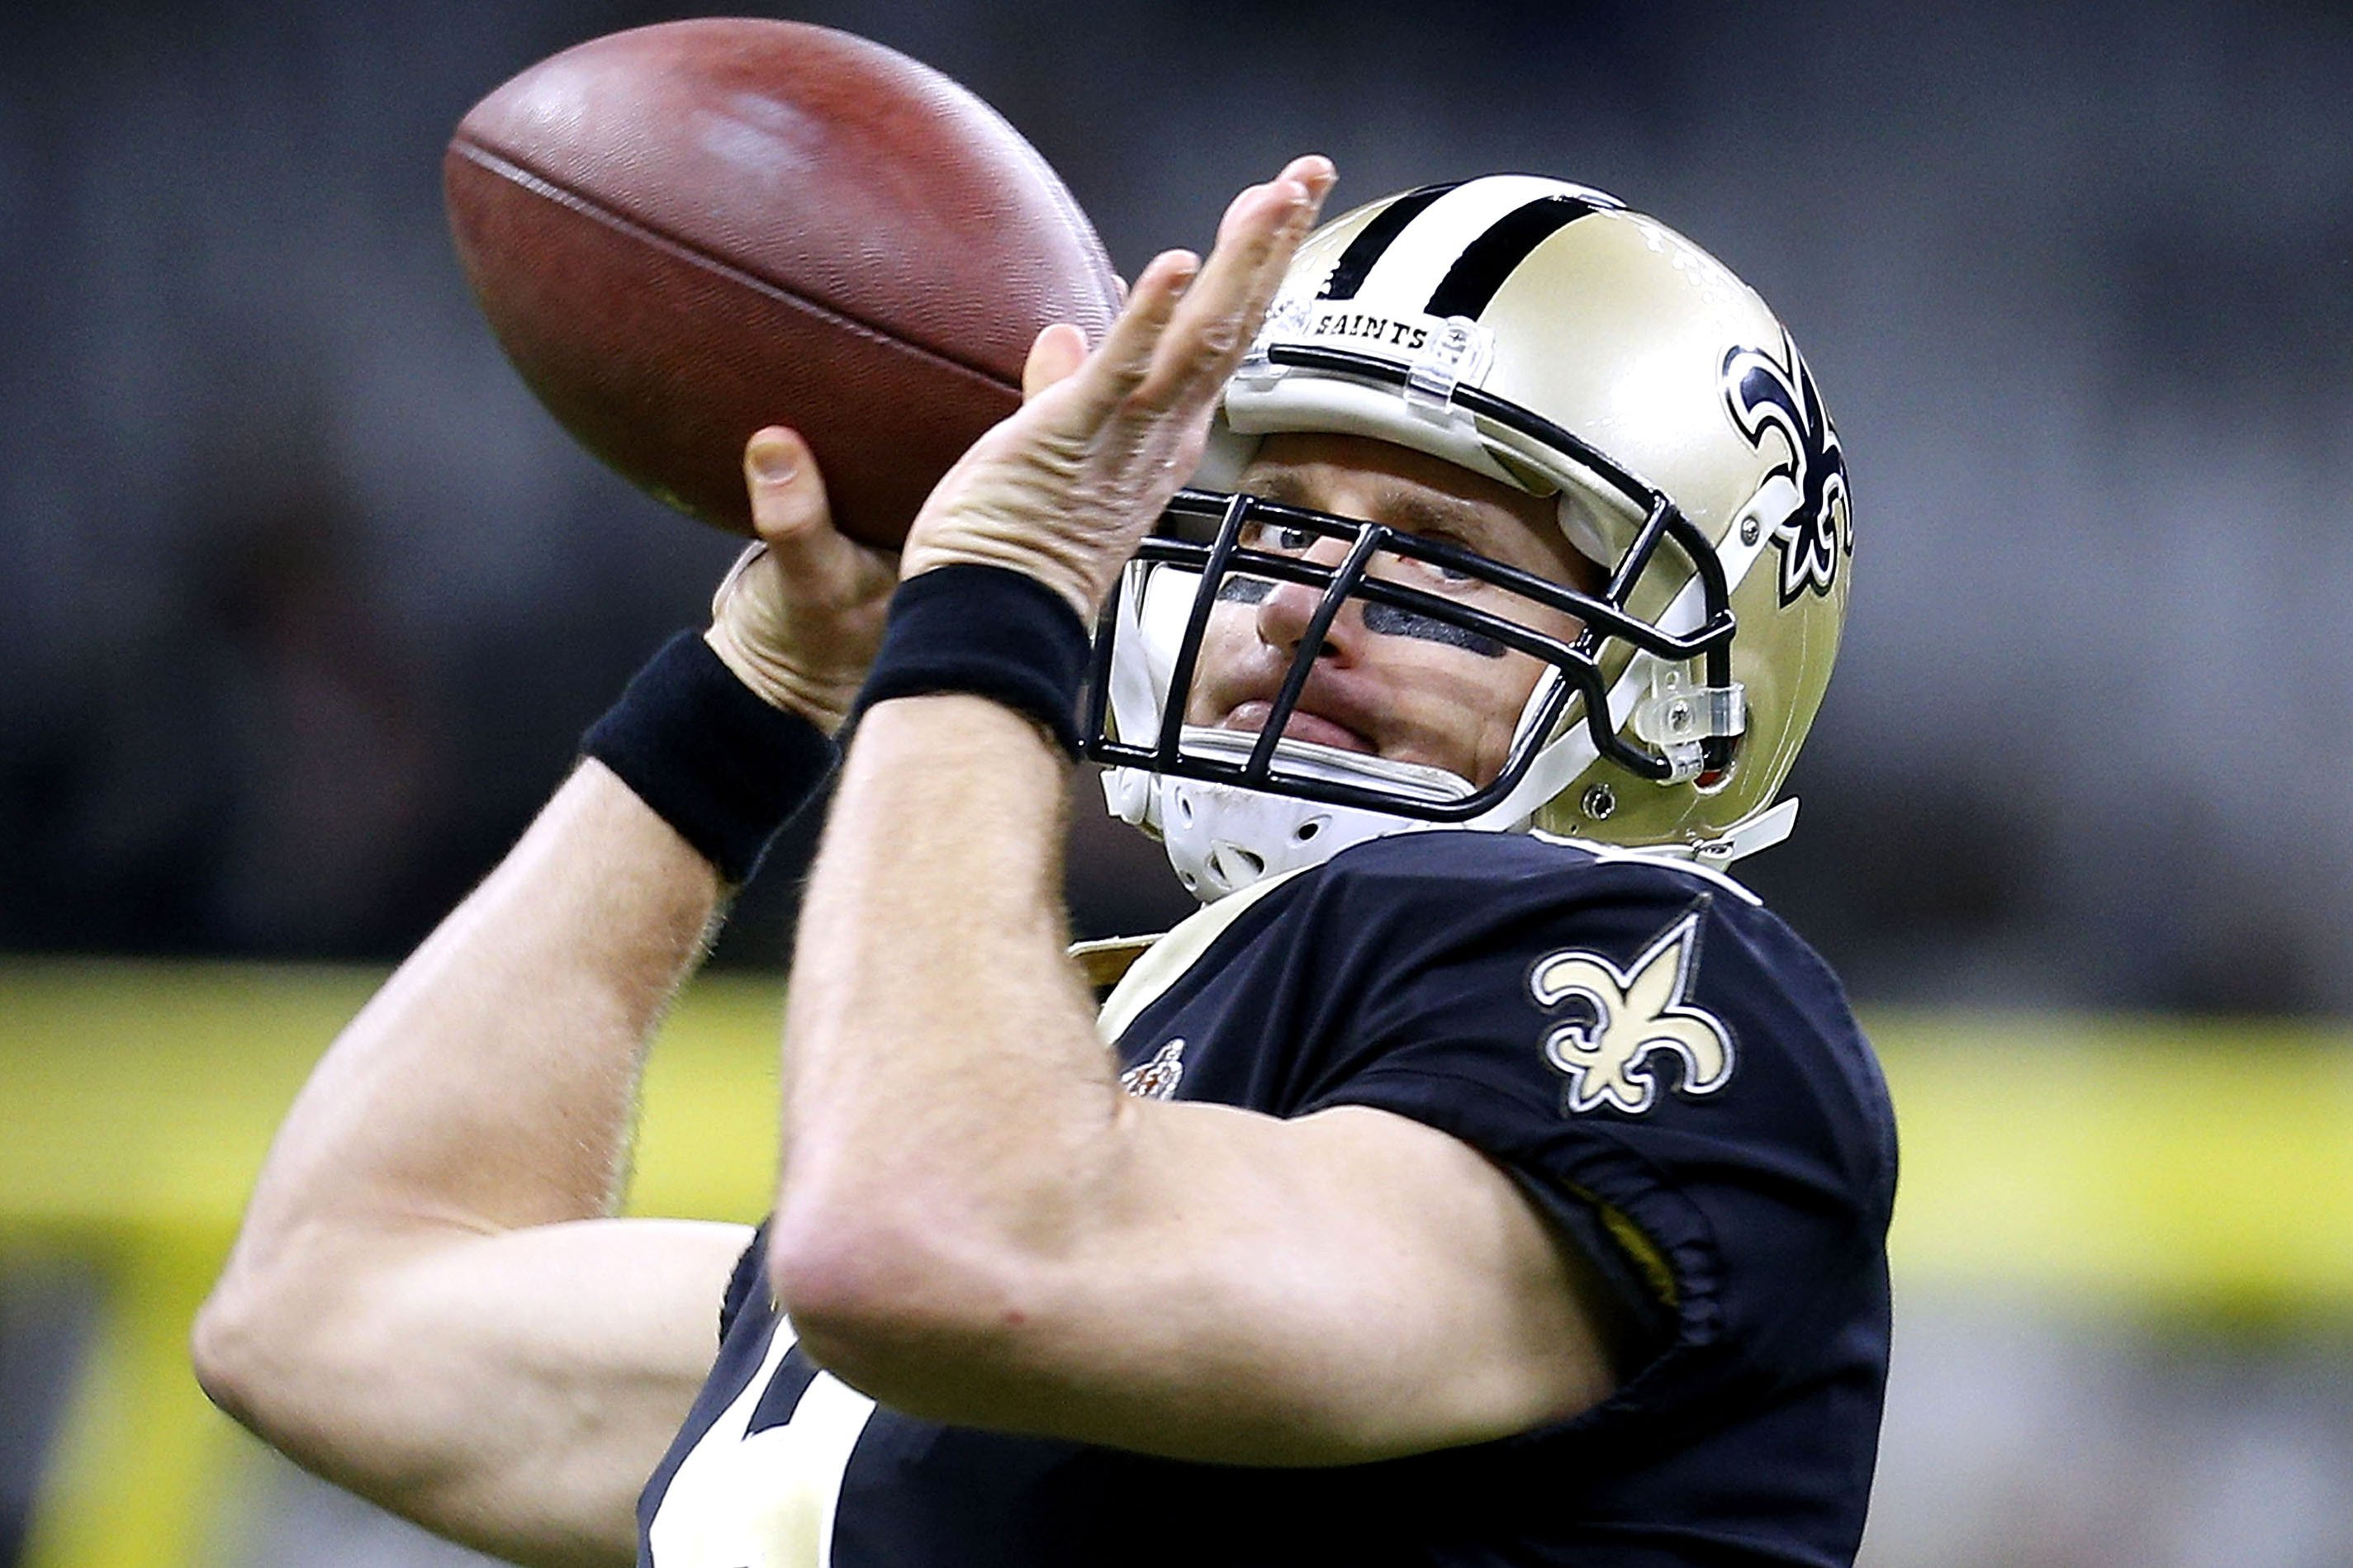 Drew Brees relishing chance to make another Super Bowl run